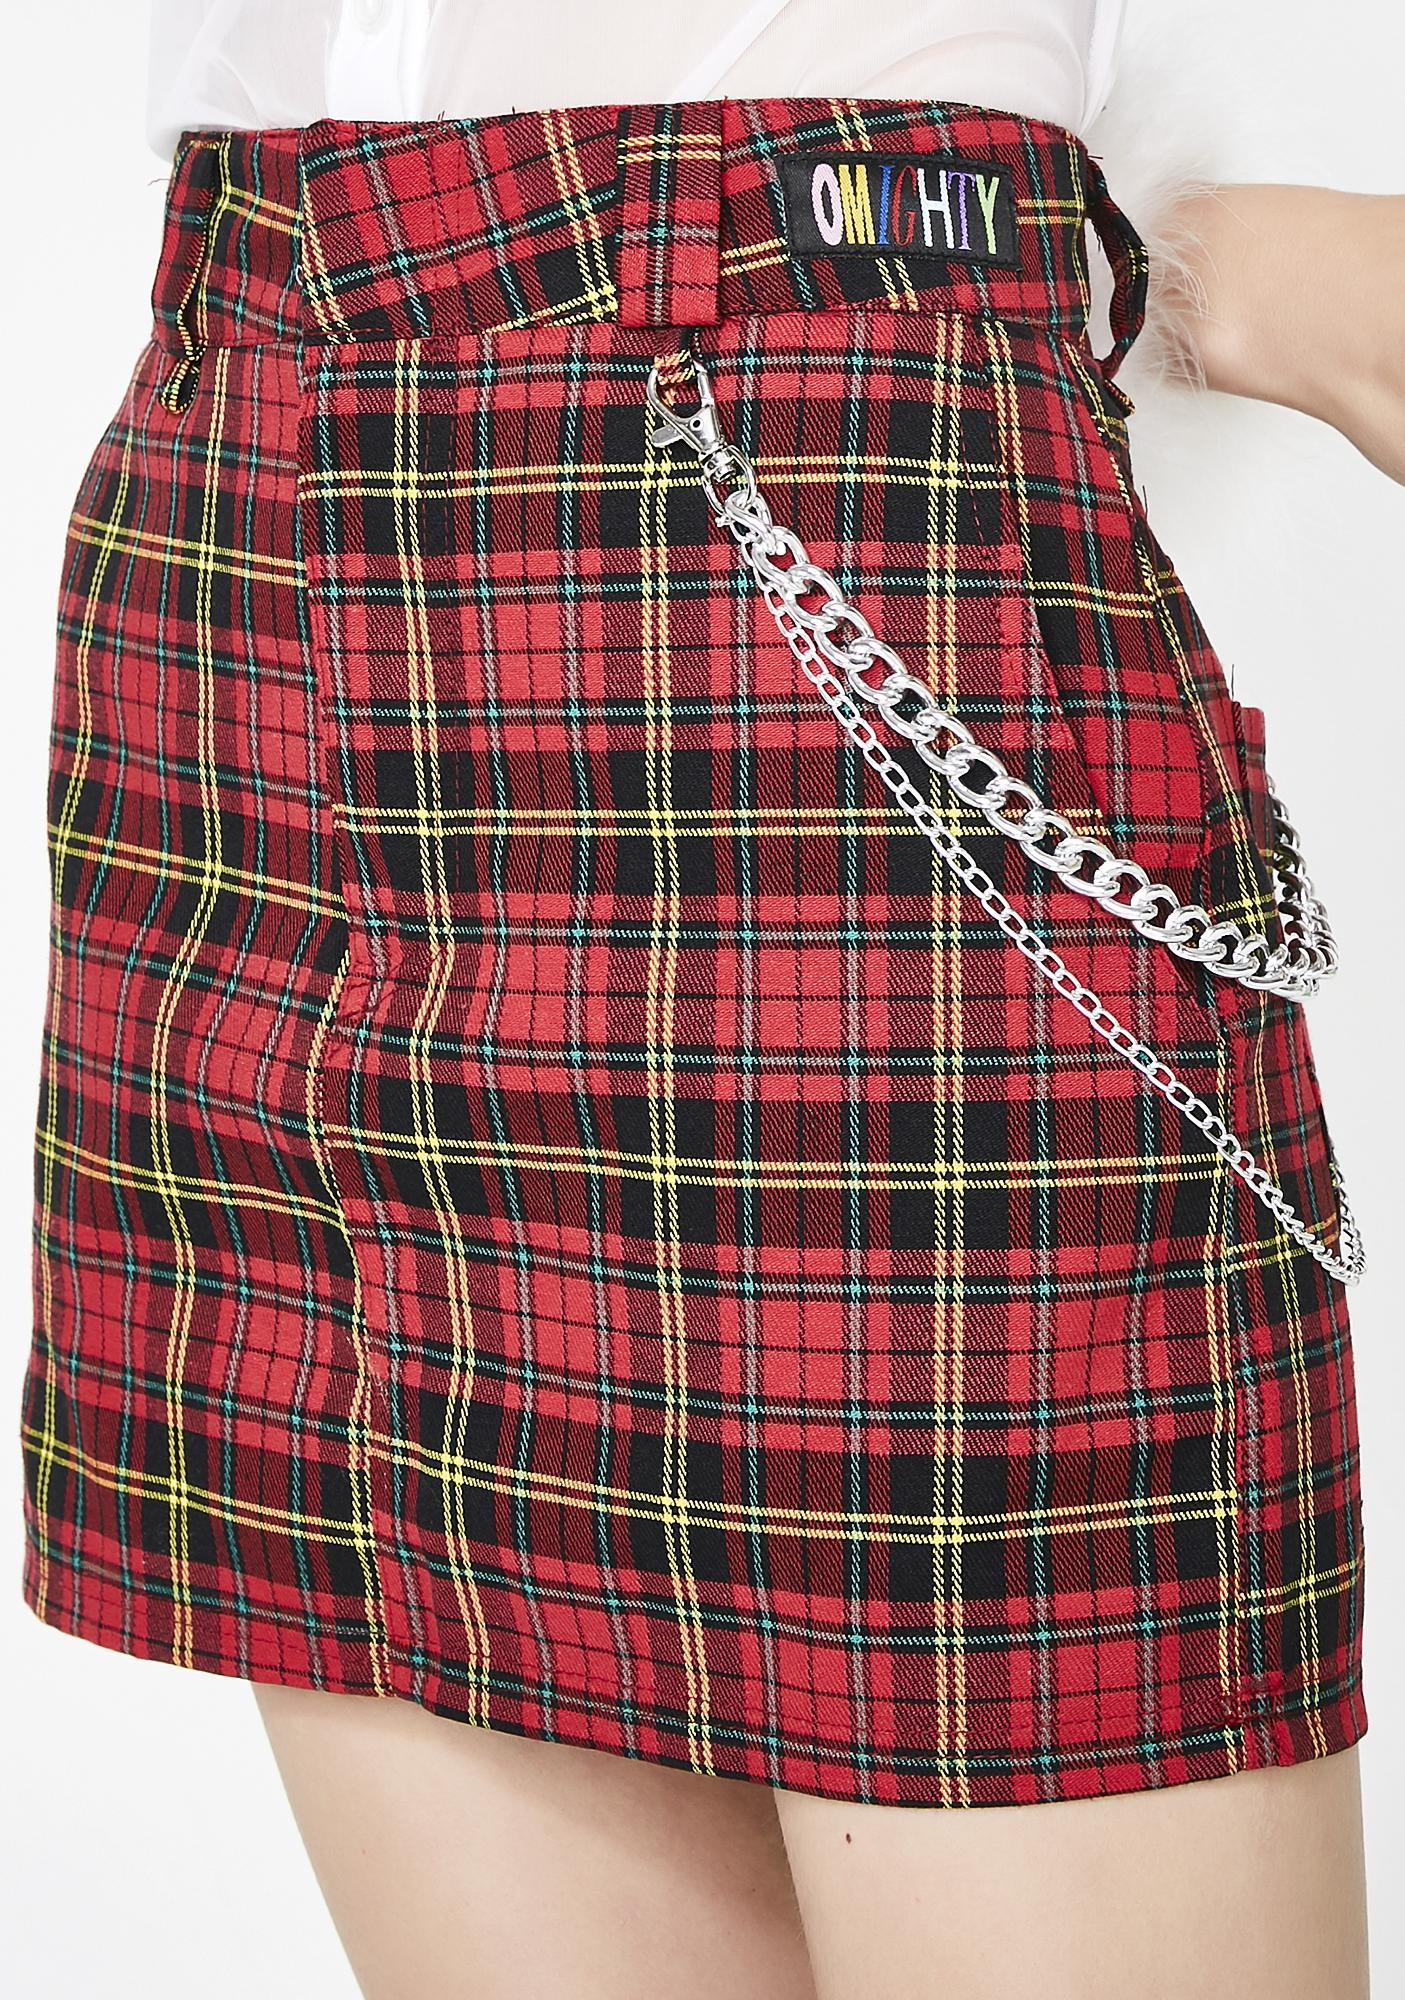 O Mighty Avril Chain Skirt